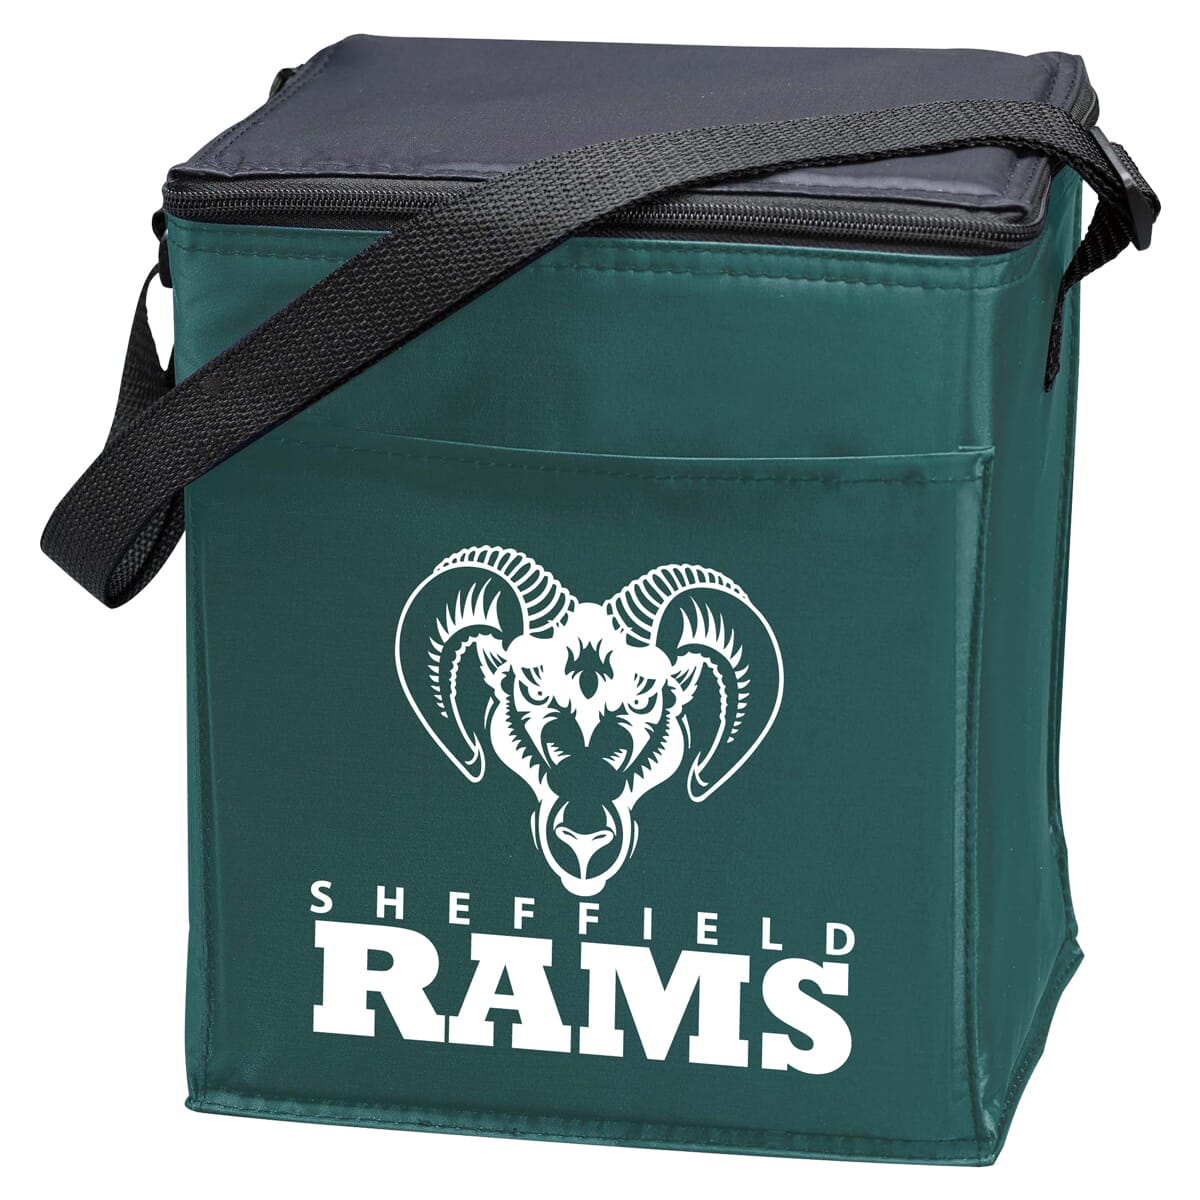 Black and forest green lunch cooler with school logo